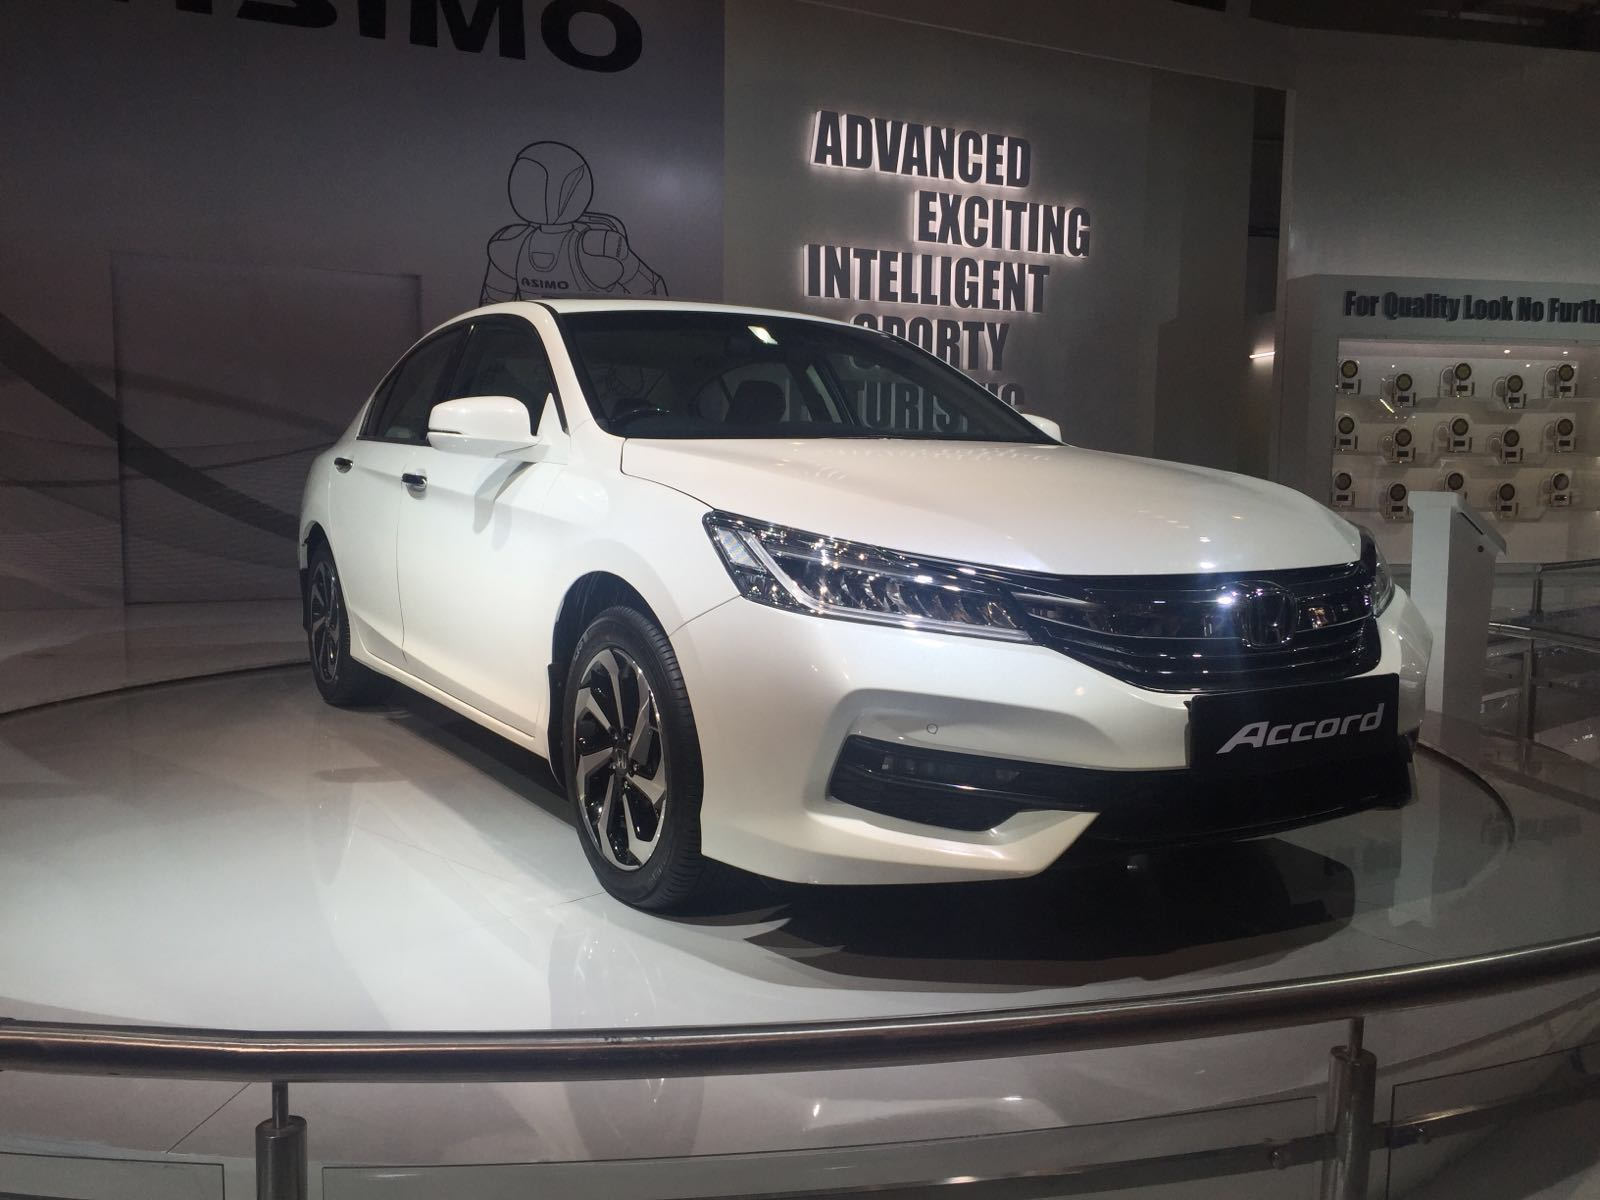 new honda accord 2016 india price 37 lakh specs mileage interior. Black Bedroom Furniture Sets. Home Design Ideas